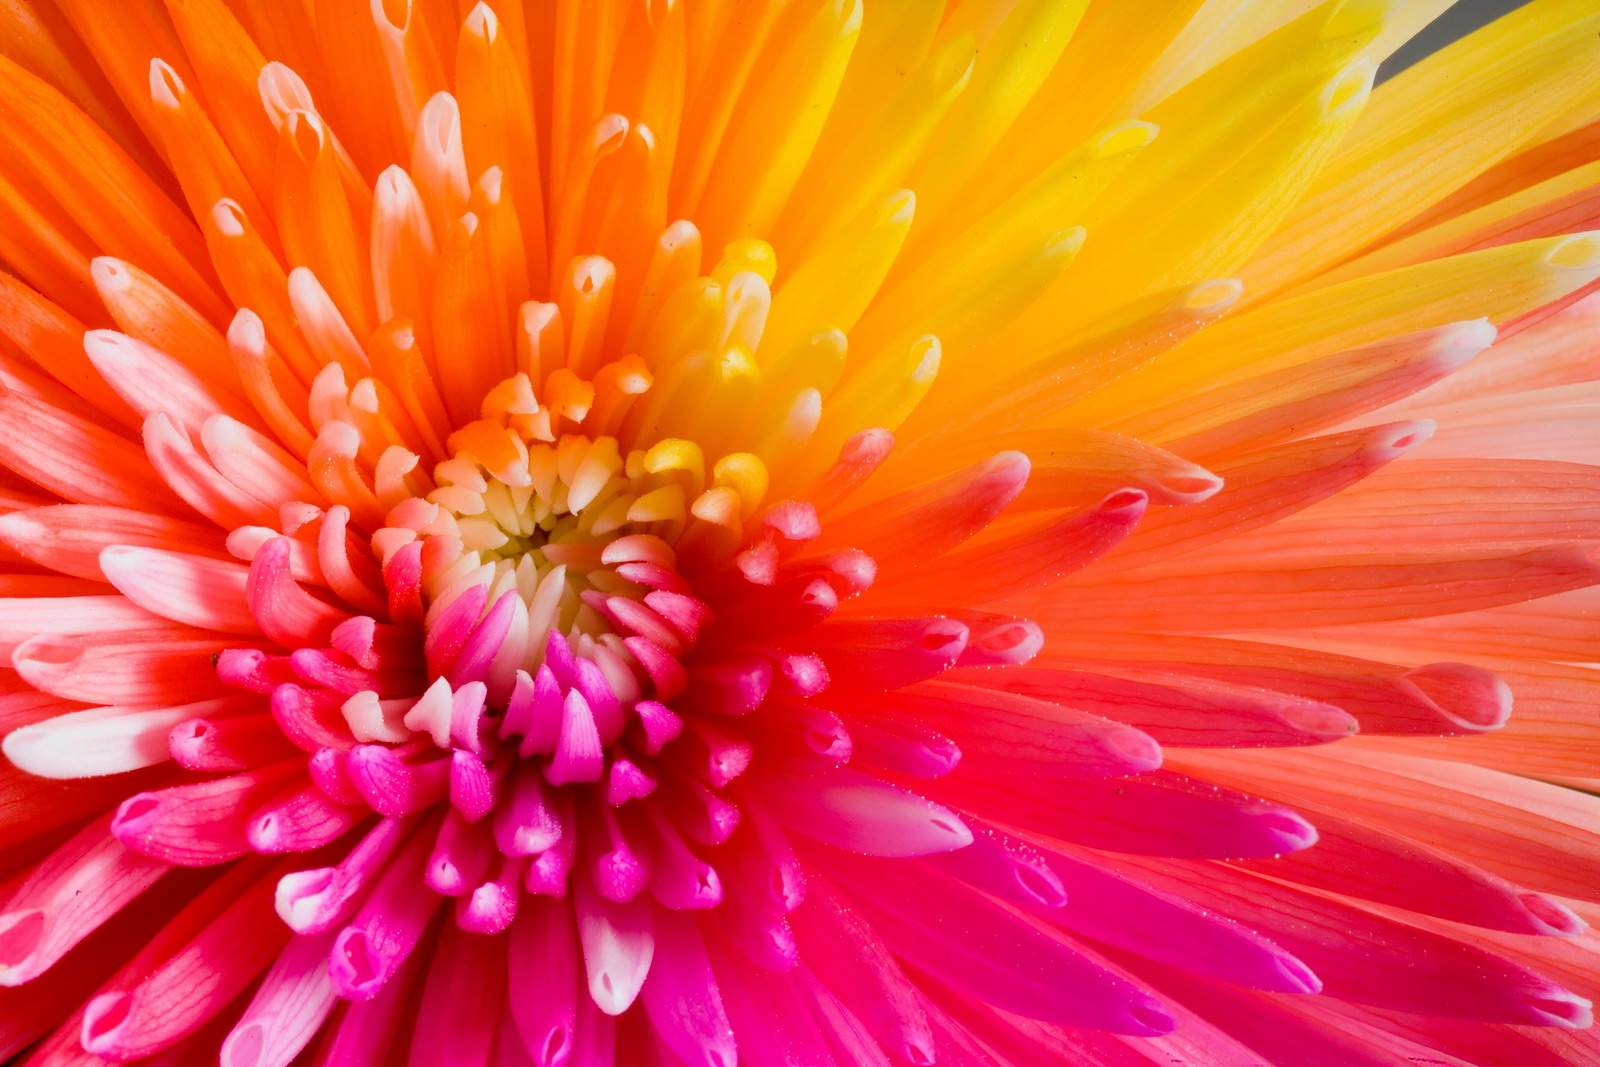 Colorful Flower Backgrounds Wallpaper